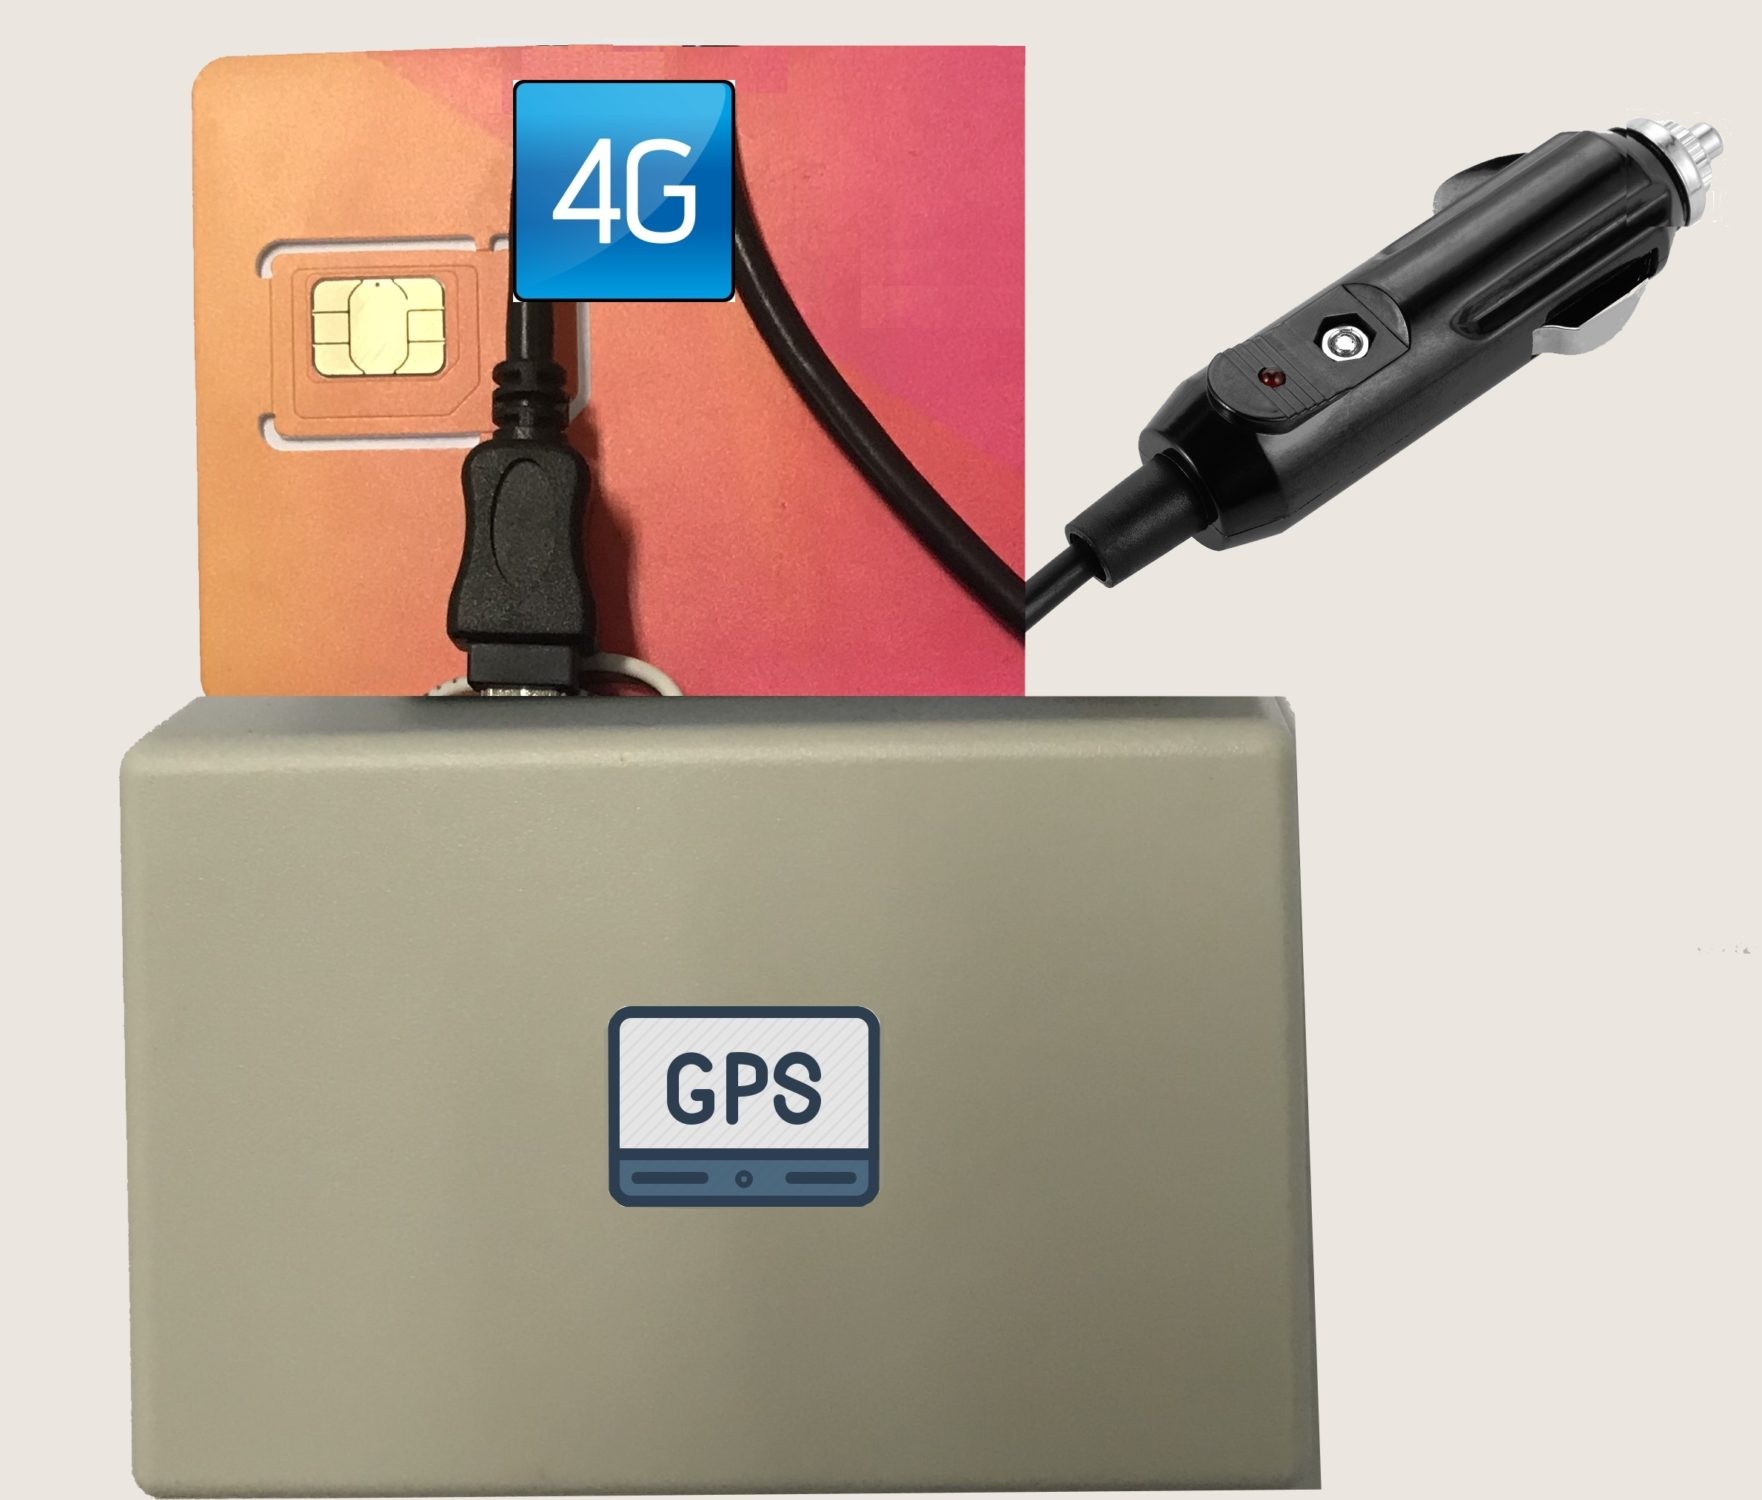 GPS Solution: Subcontractor GPS tracker 4G with 'plug & go' operation via cigarette lighter terminal,no install no battery life issues,for use when you have subcontractors who work for your company